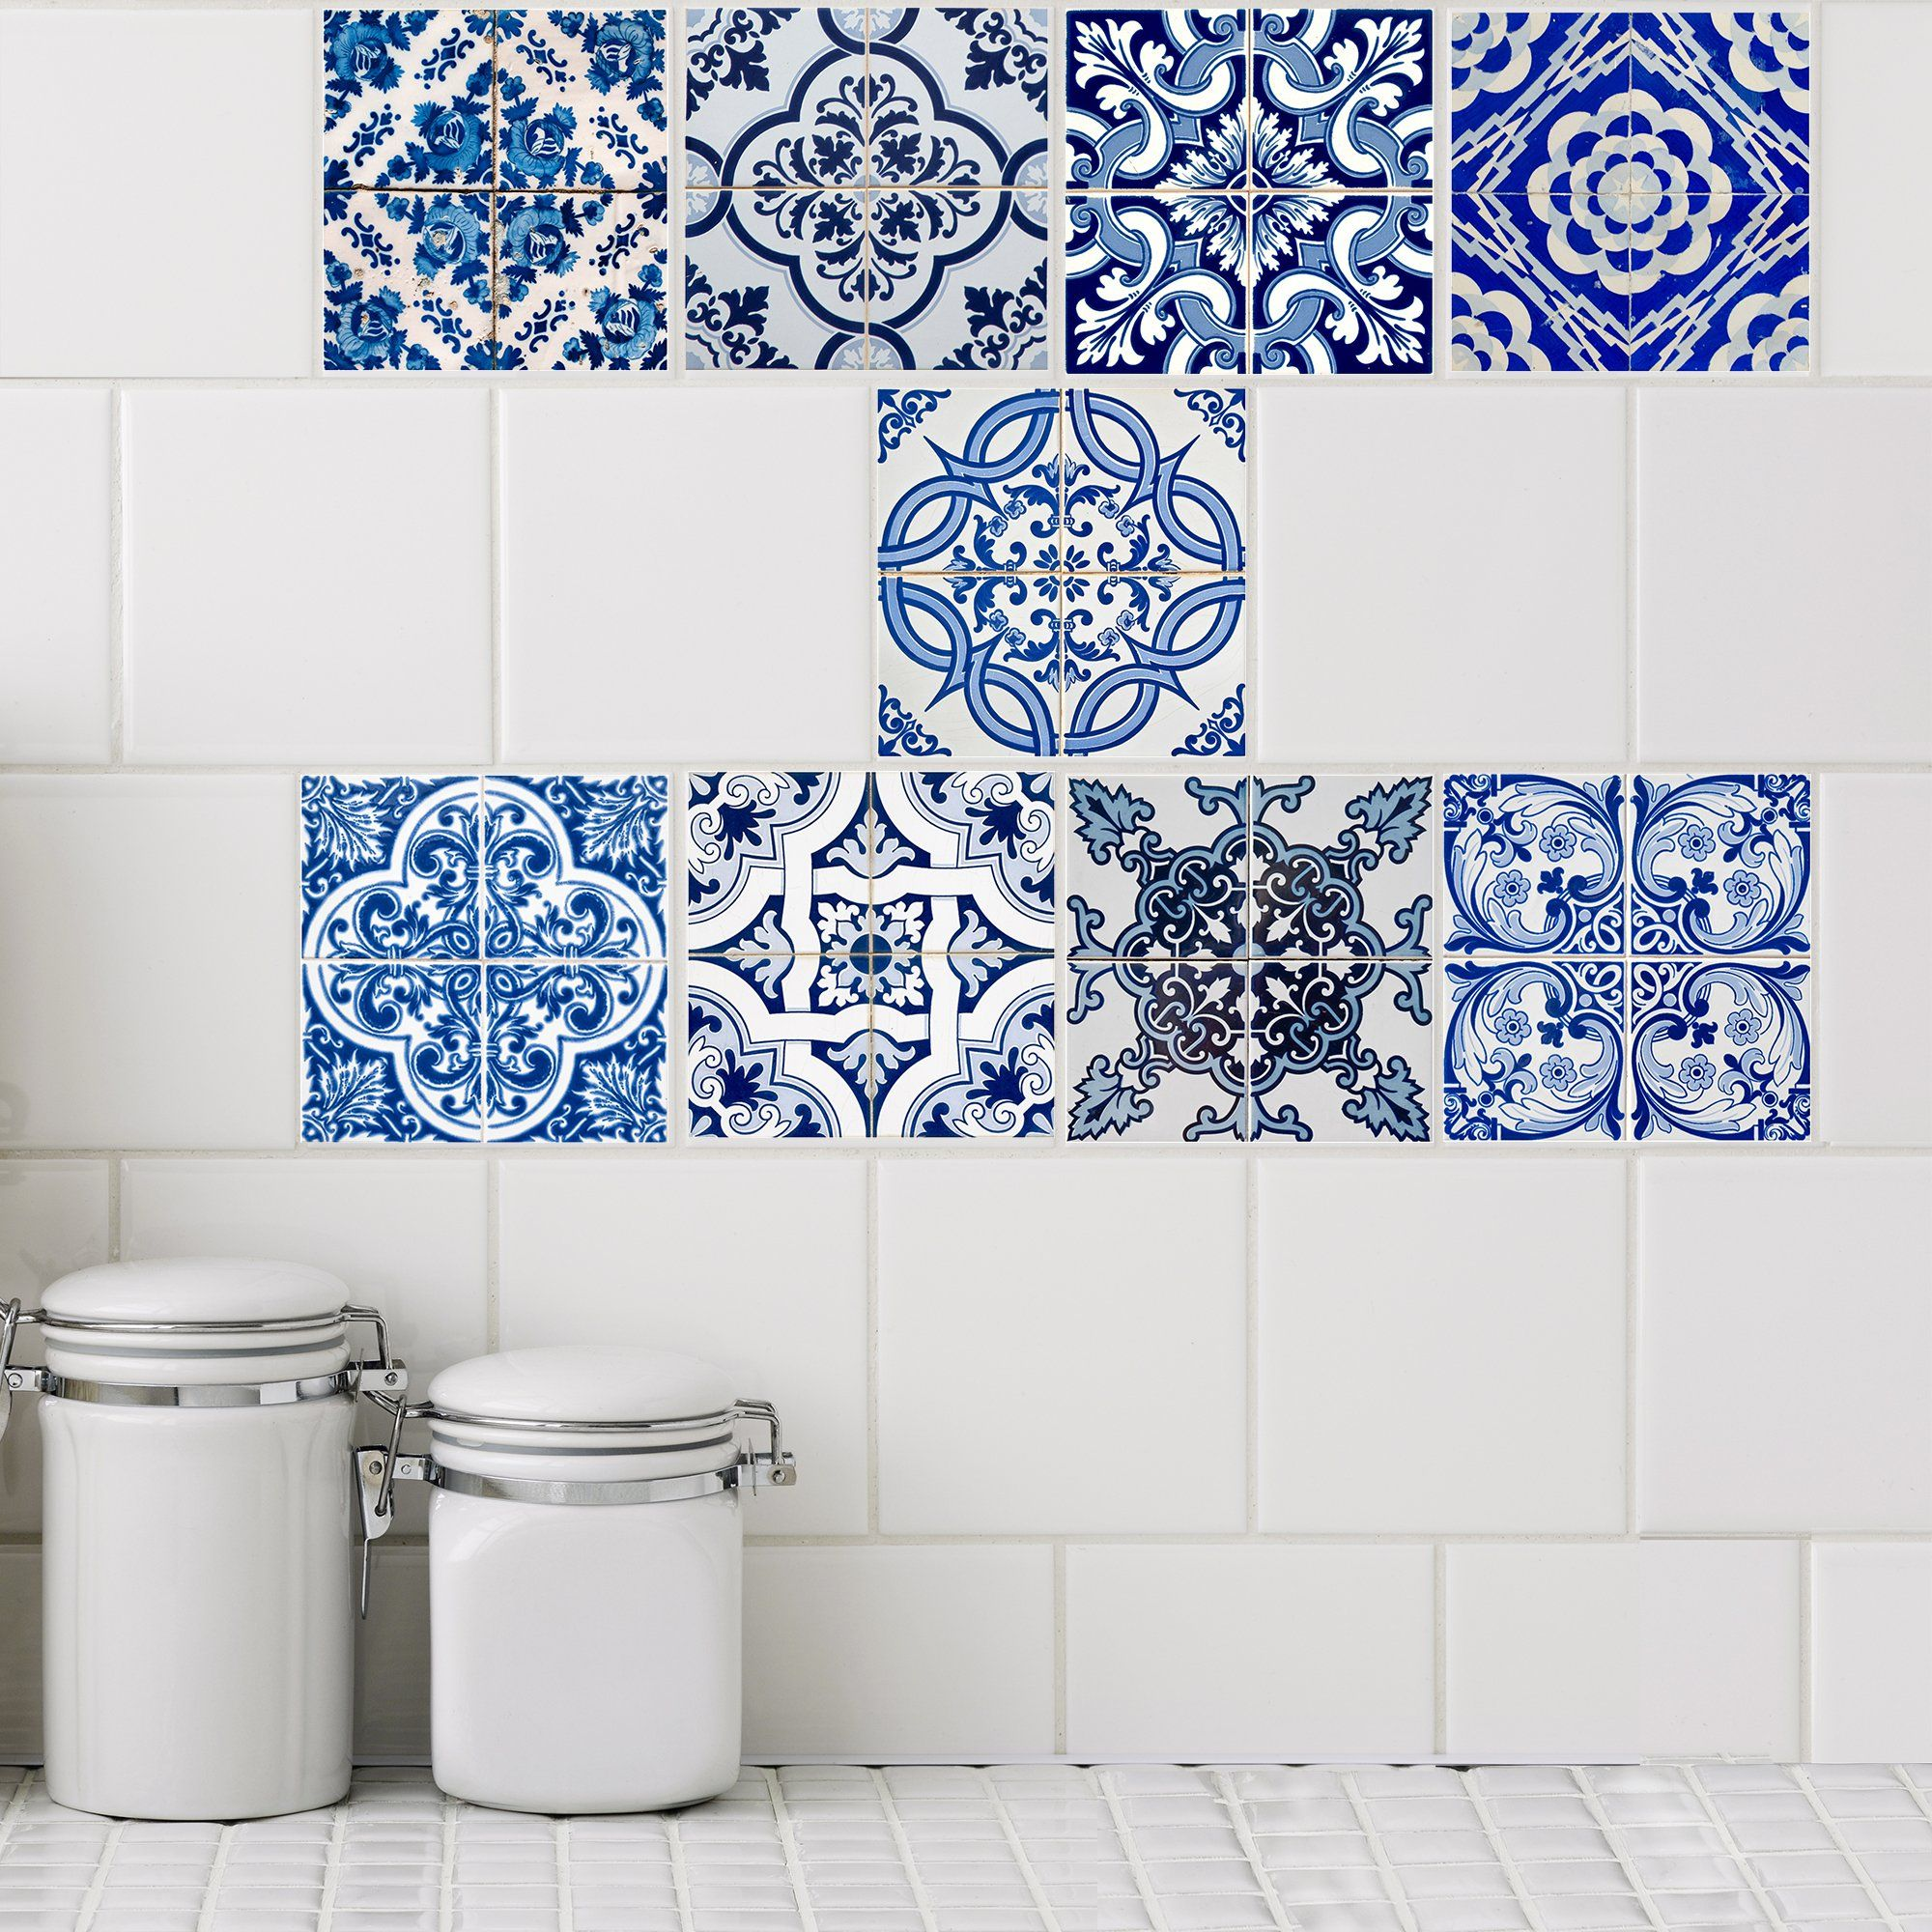 Azul Collection Tile Decals | Tile decals, Apt ideas and Upstairs ...